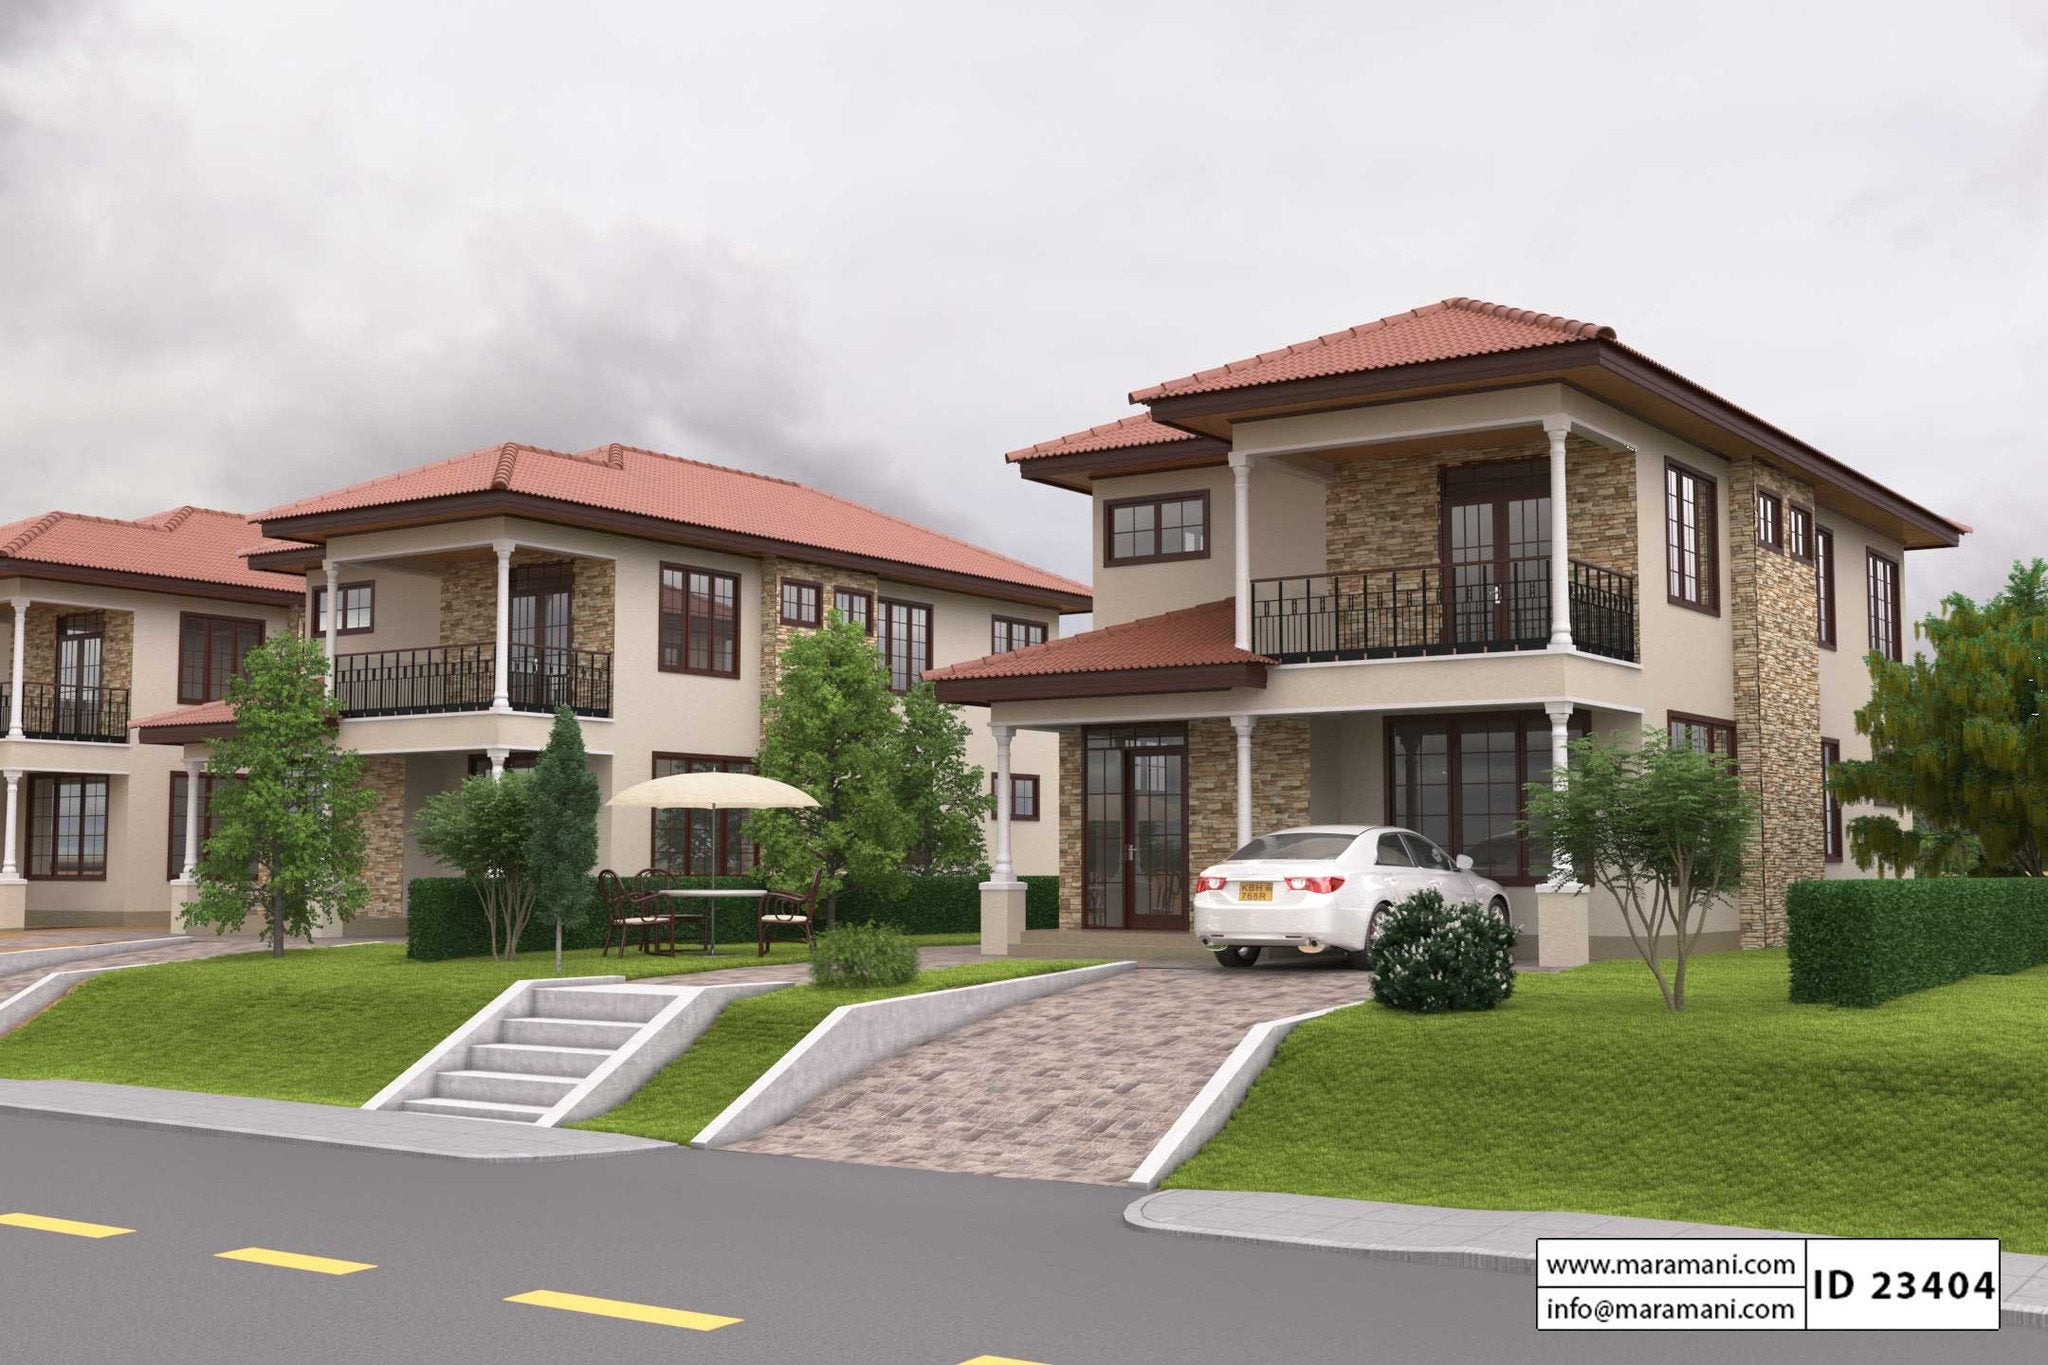 Simple Three Bedroom House Plan   ID 23404   Floor Plans By Maramani